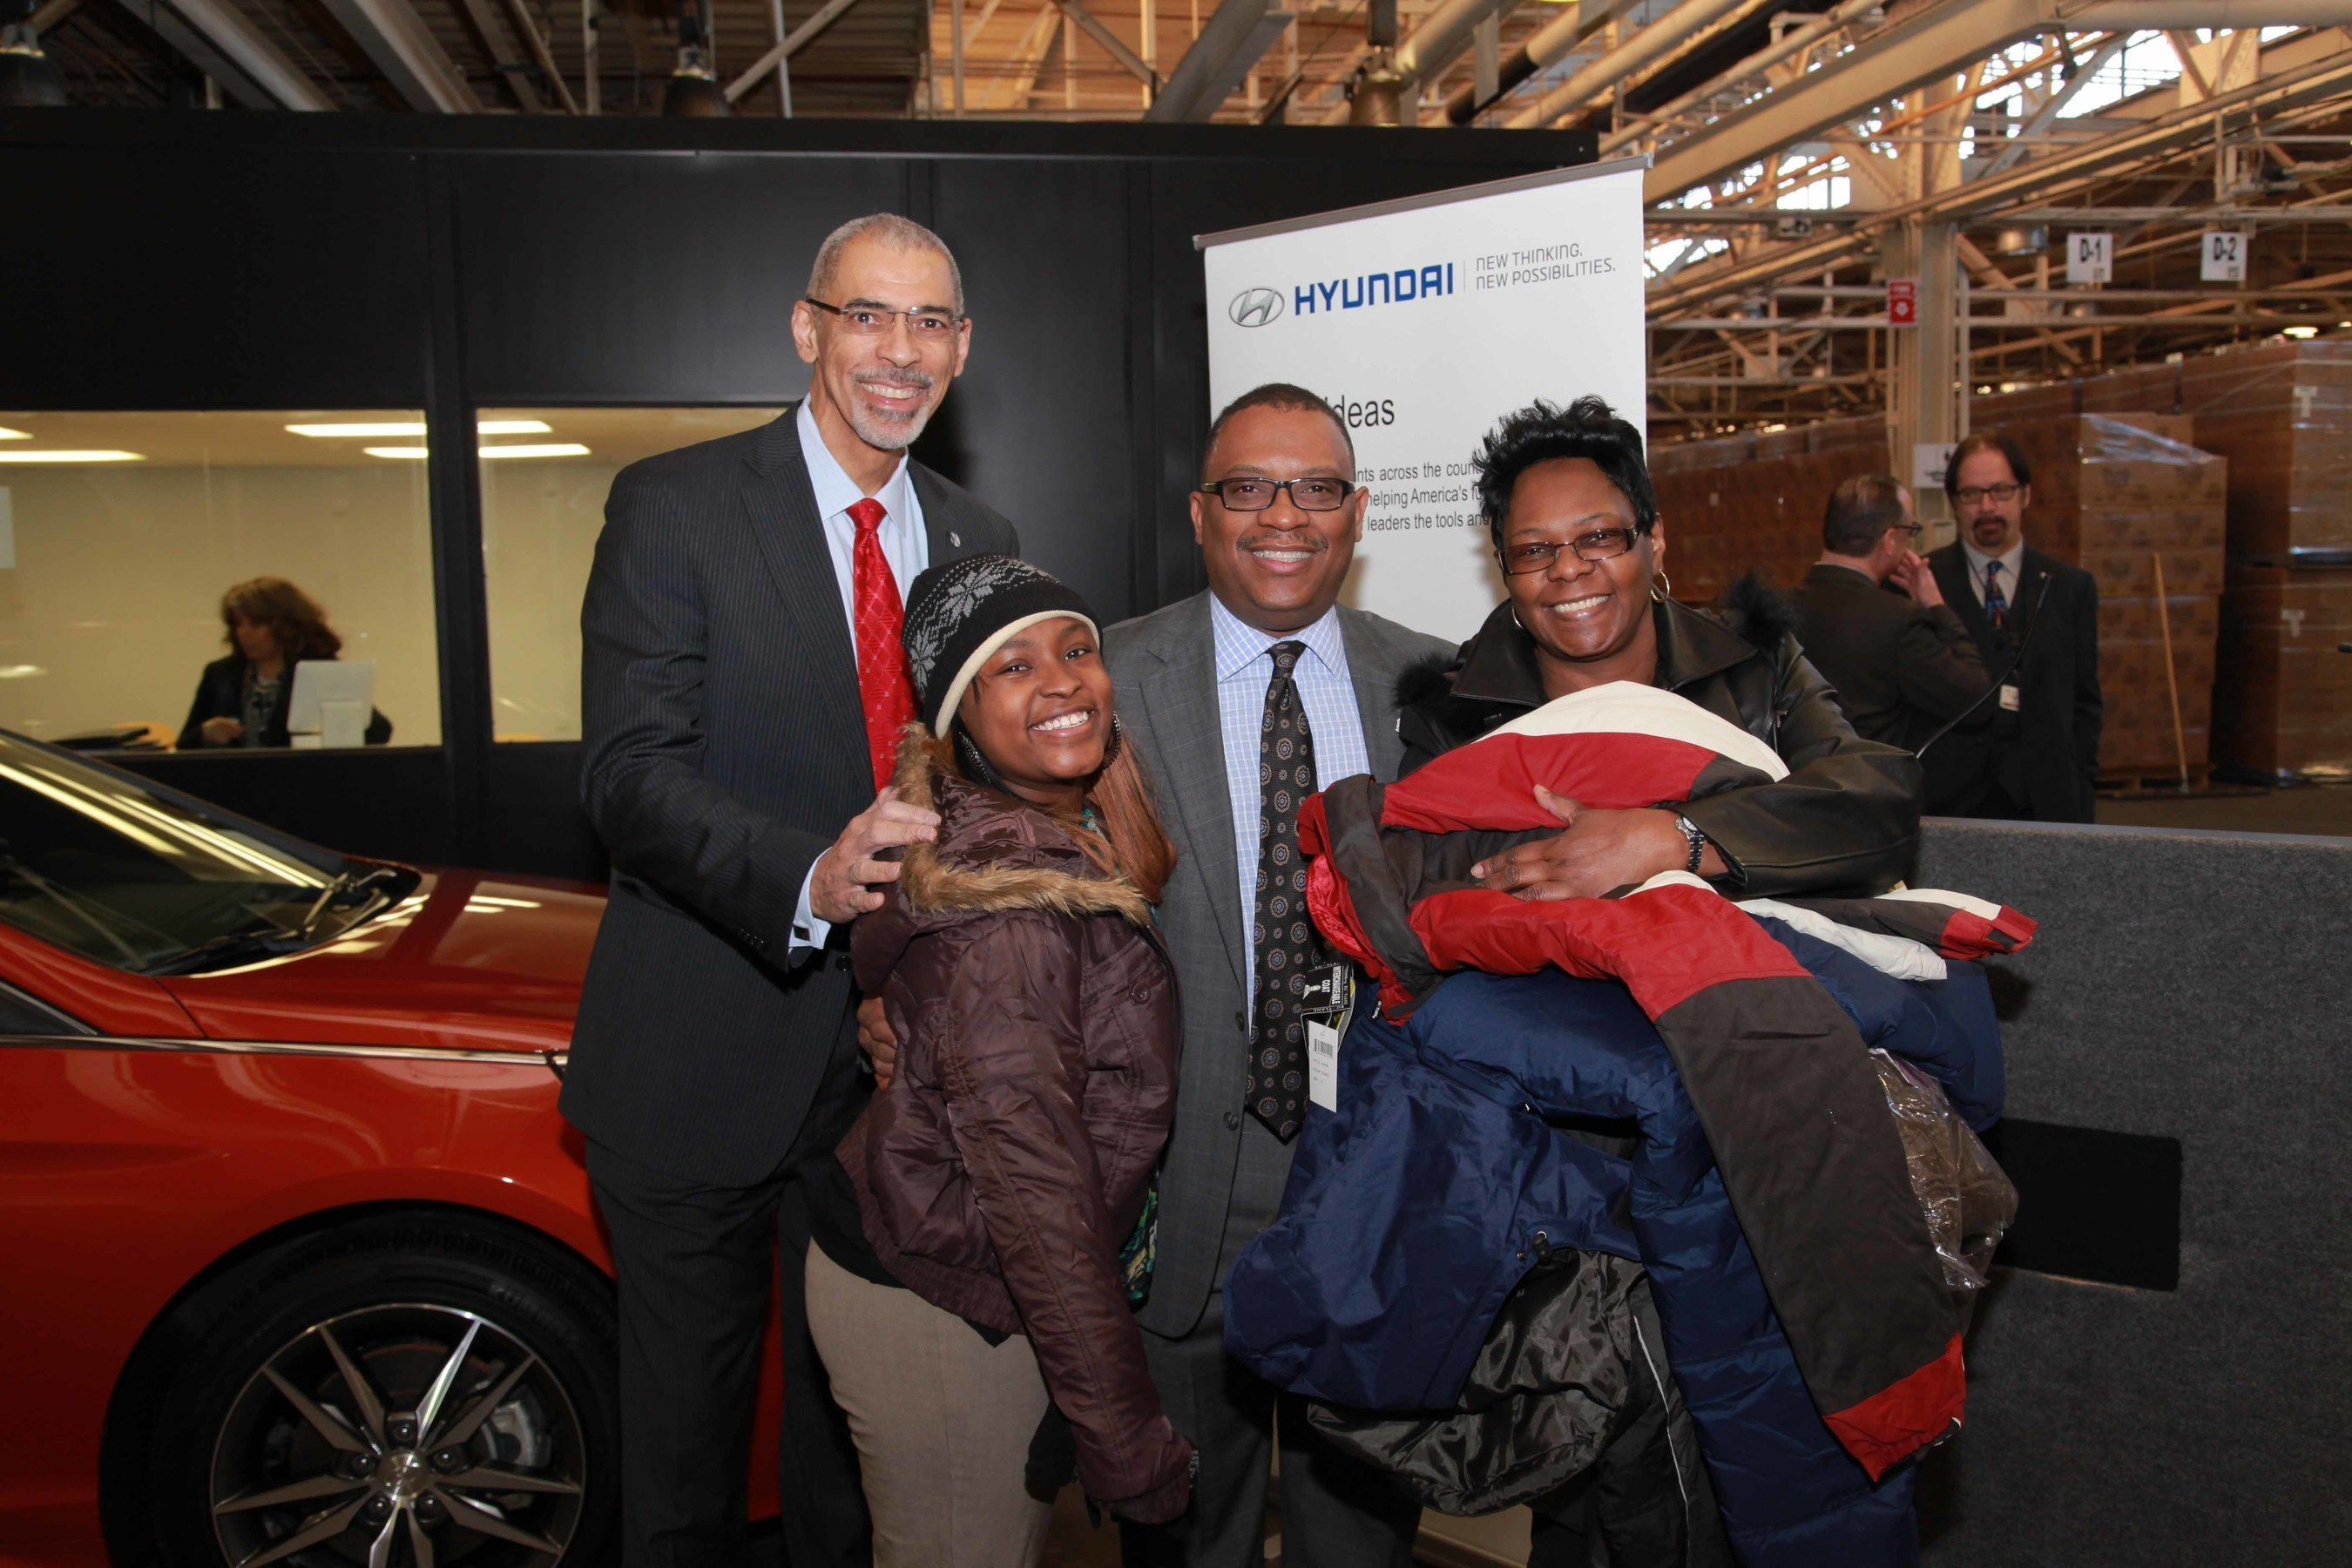 Hyundai Motor America Continues Commitment to Diversity